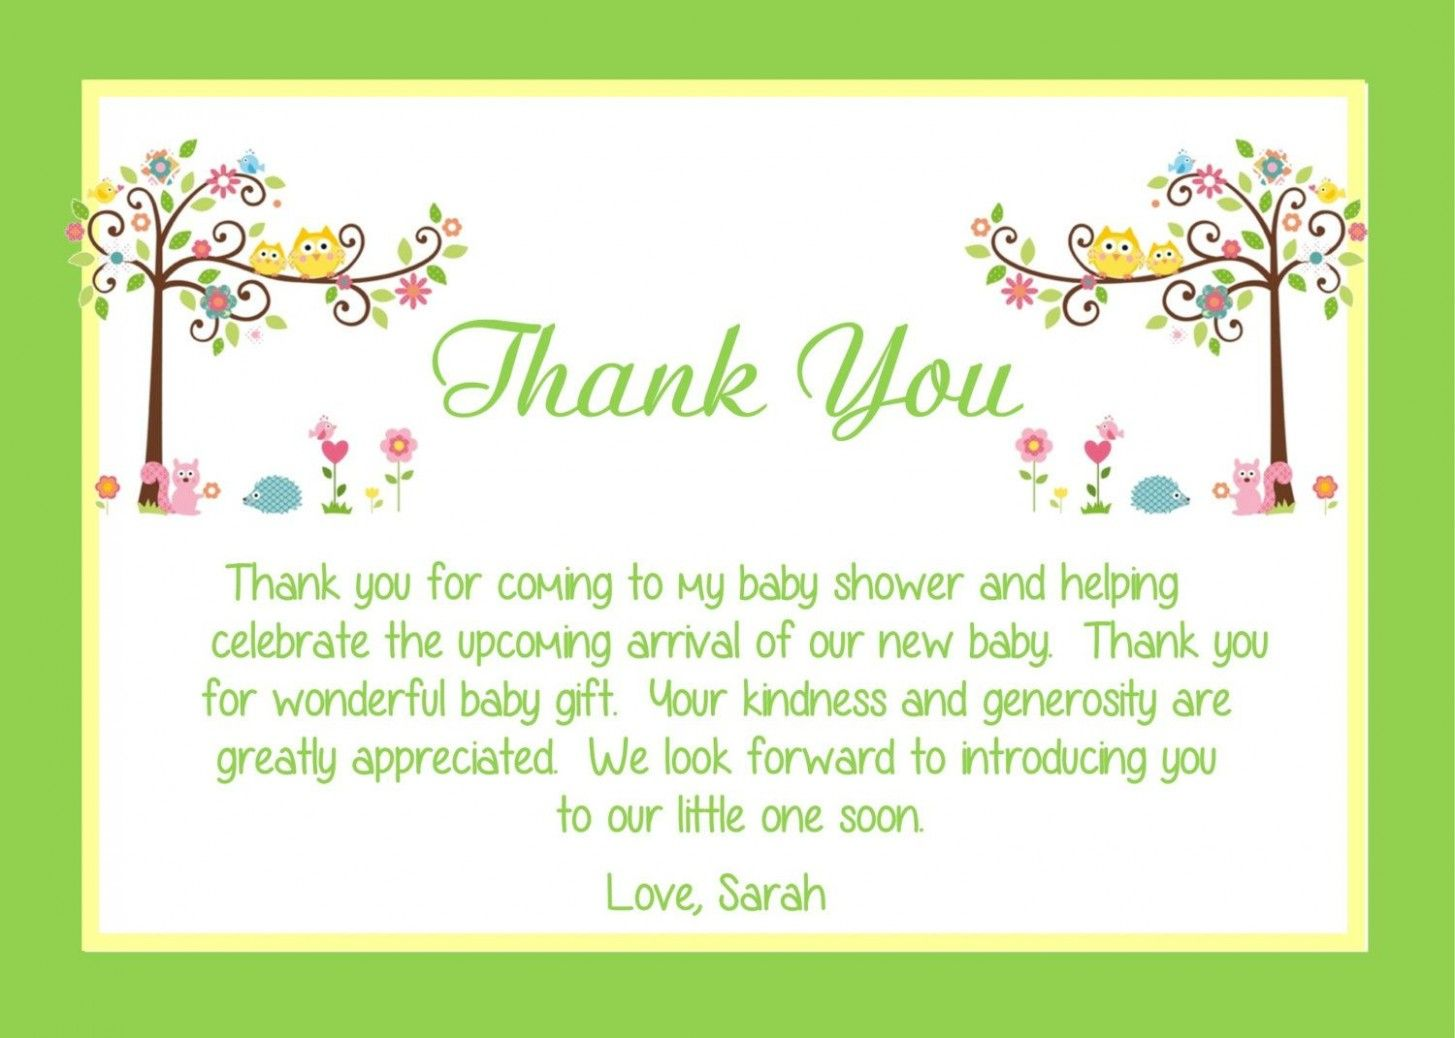 9 Awesome Thank You Note For Baby Gift In 2021 Baby Thank You Cards Baby Shower Card Wording Baby Shower Thank You Cards Words for thank you card